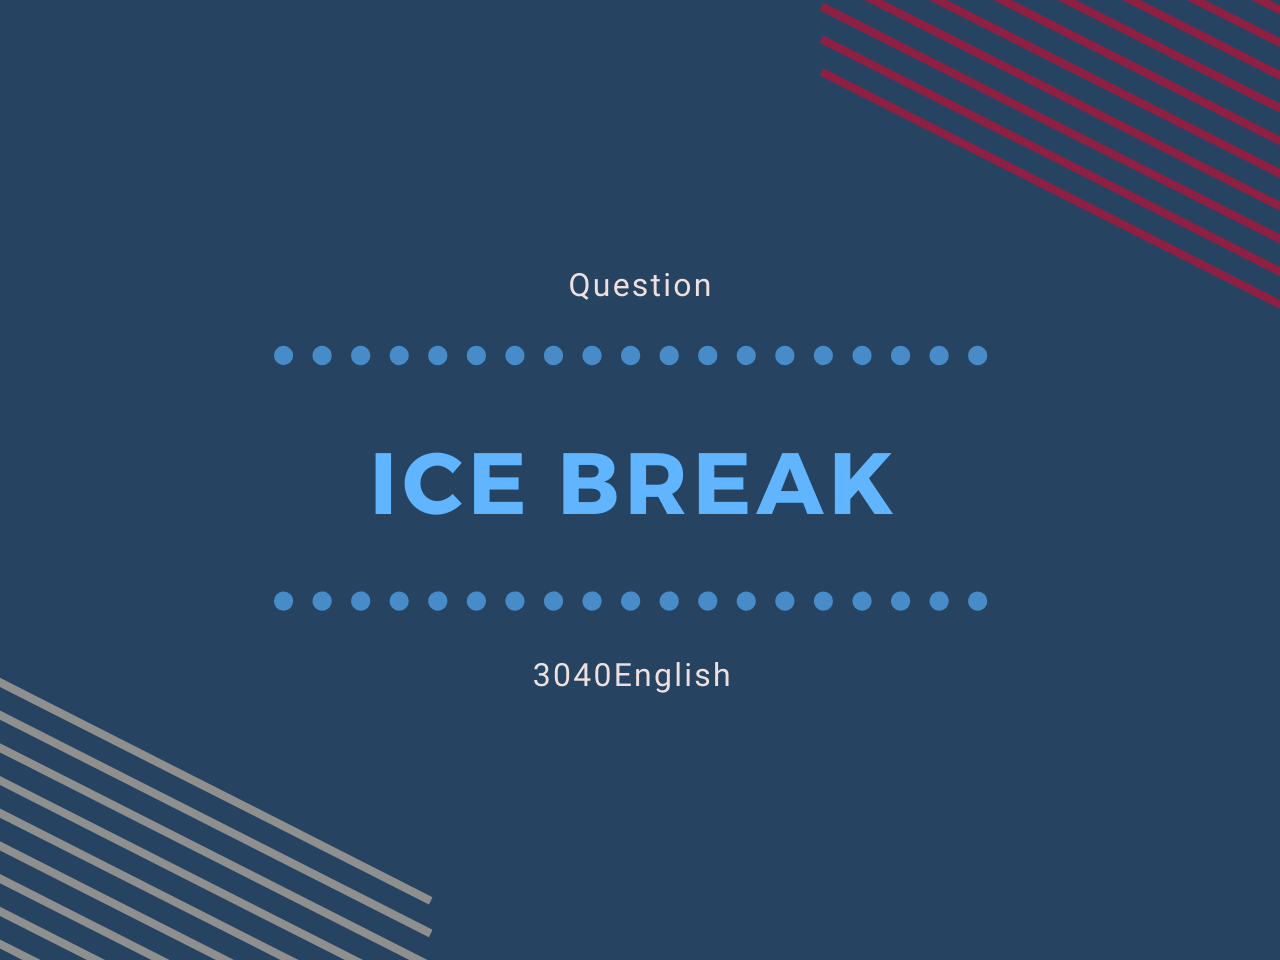 Question : Ice Break